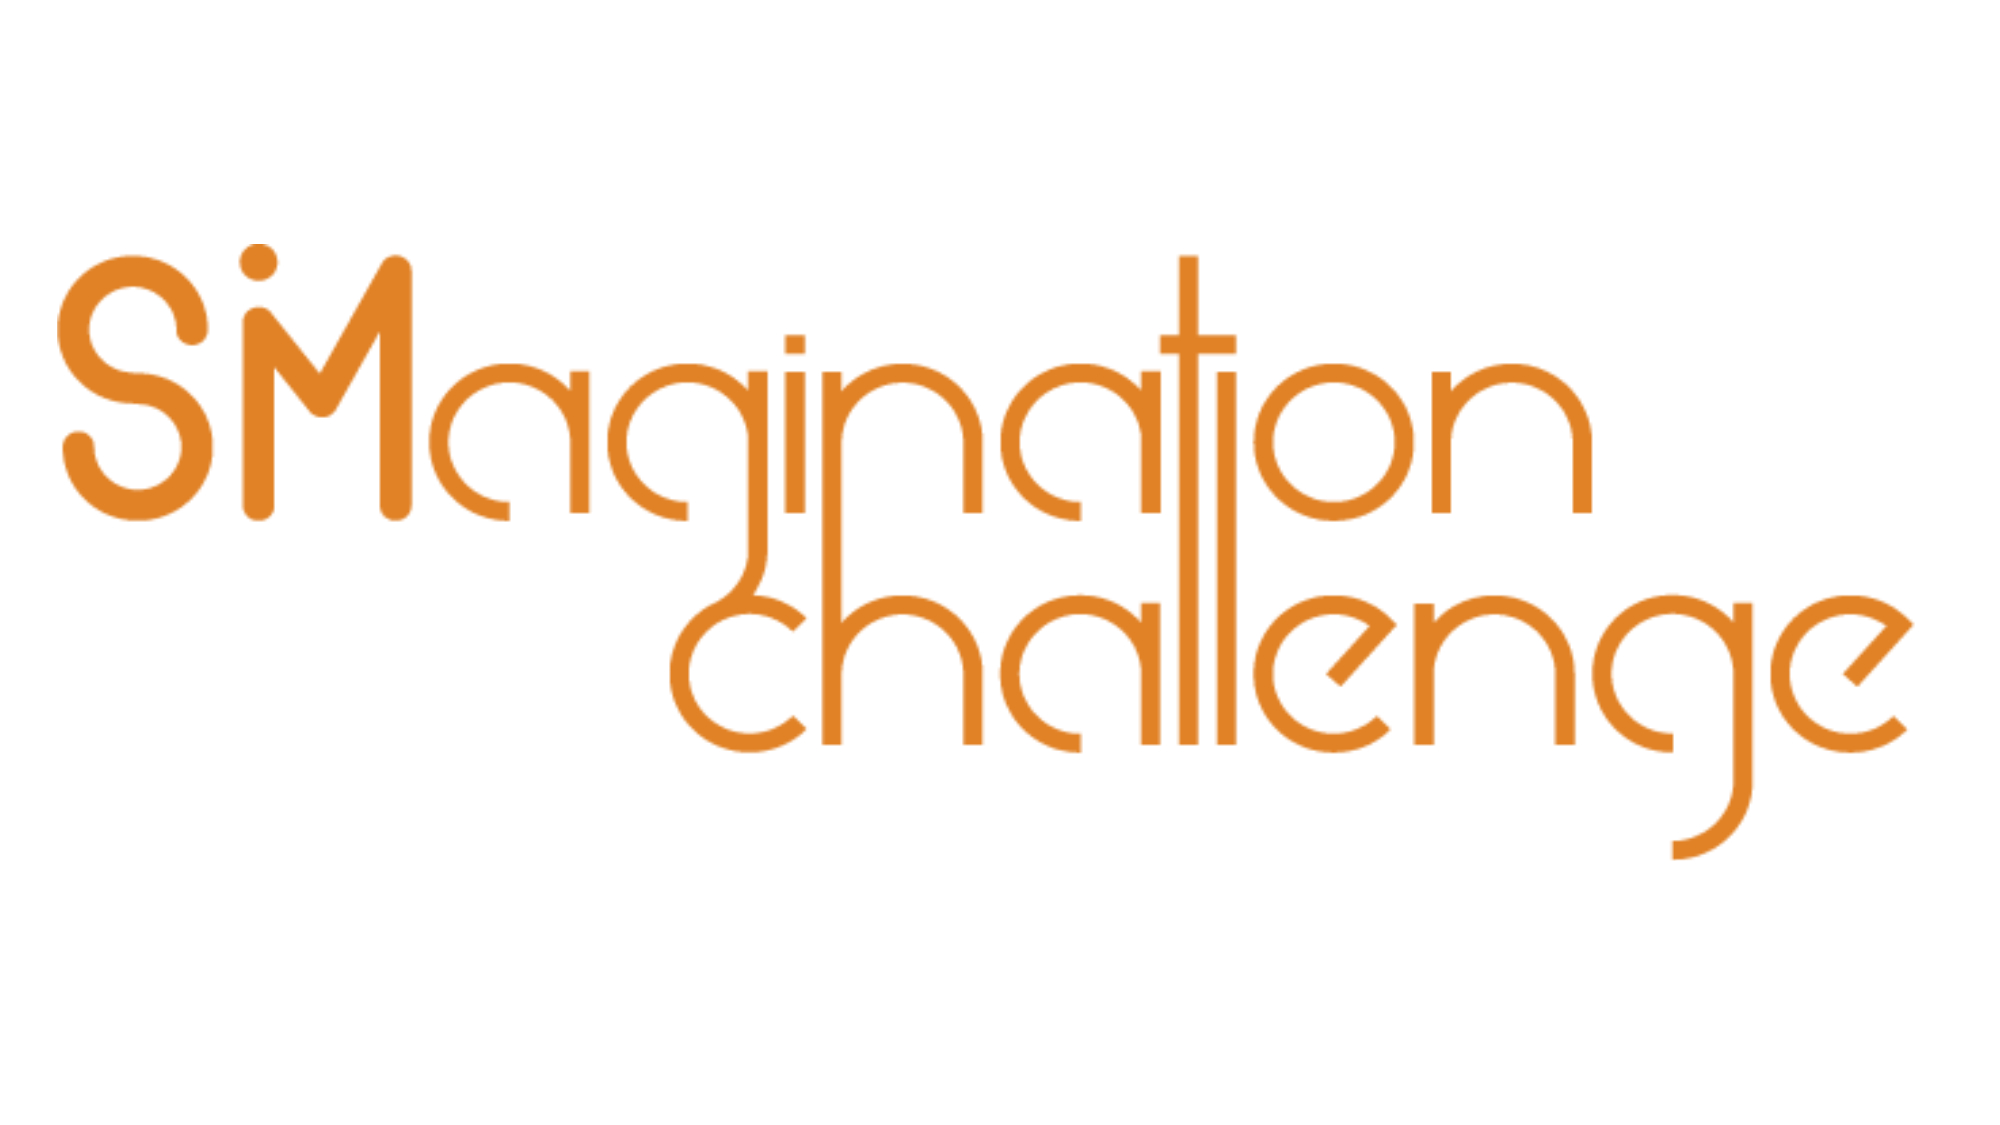 SIMagination Challenge